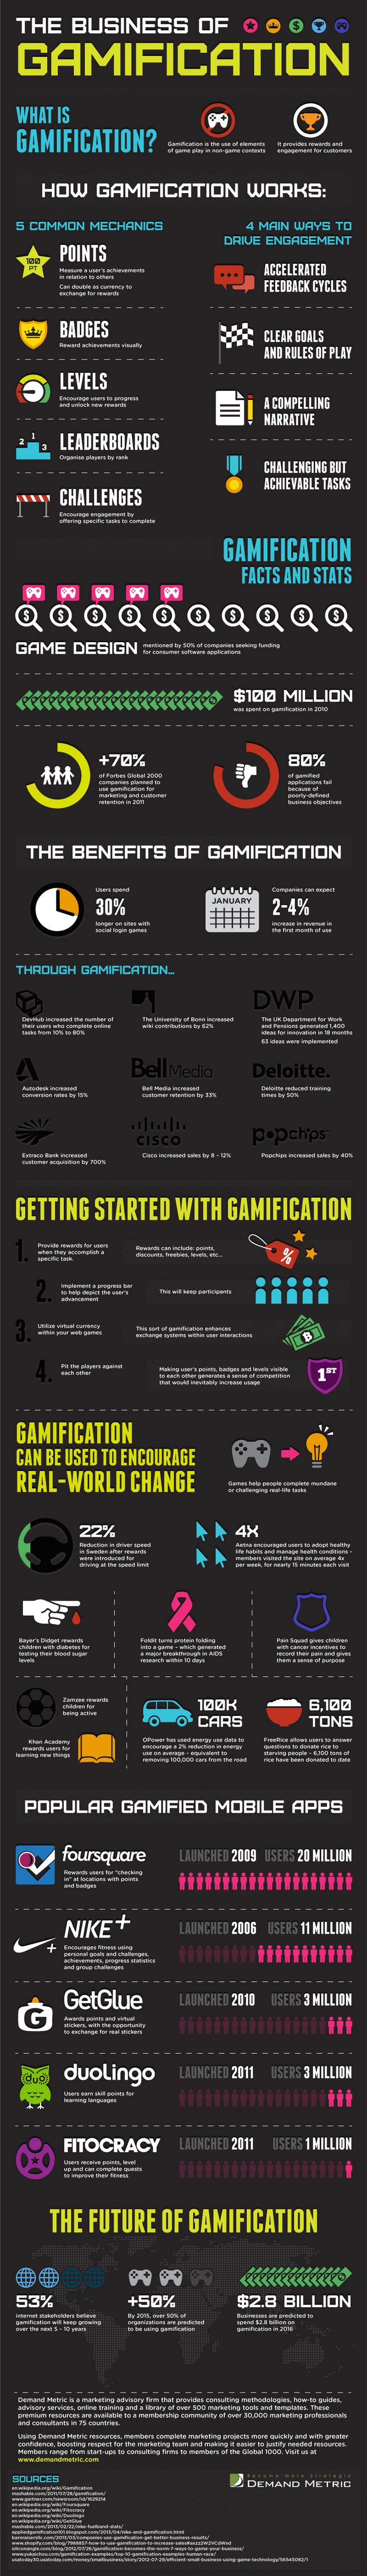 Gamification Infographic - Did you know that 70% of Forbes'Global 2000 have plans to use Gamification? Do you think it's the next Super Trend?